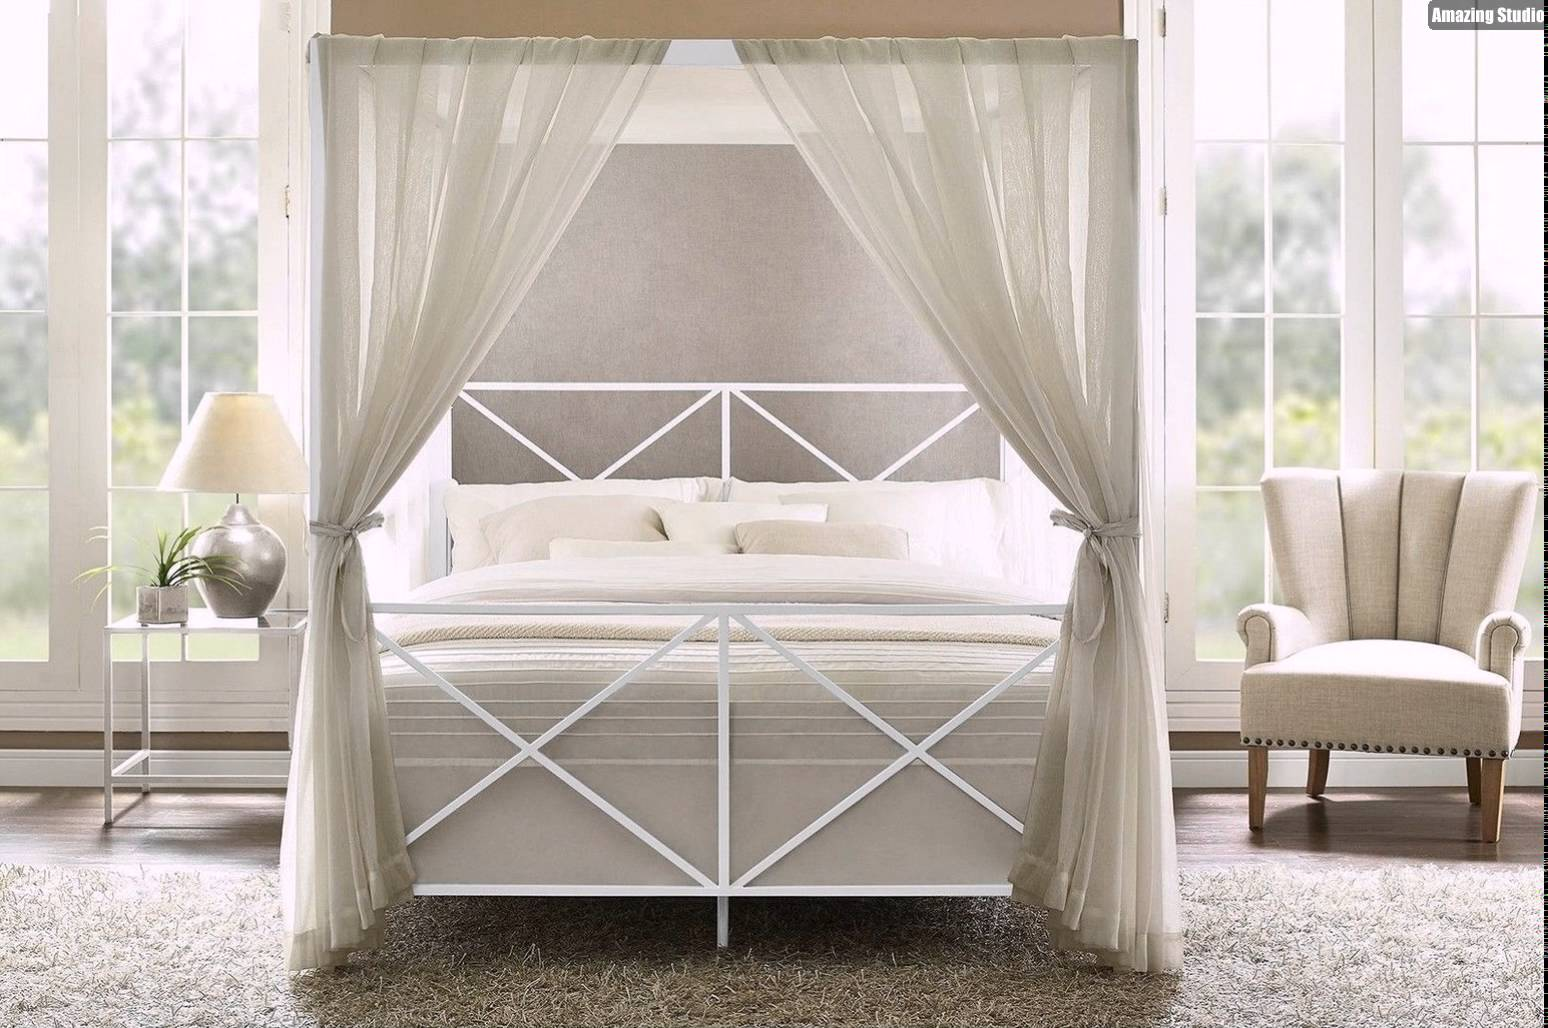 Diy canopy bed from pvc pipes midcityeast for Build your own canopy bed